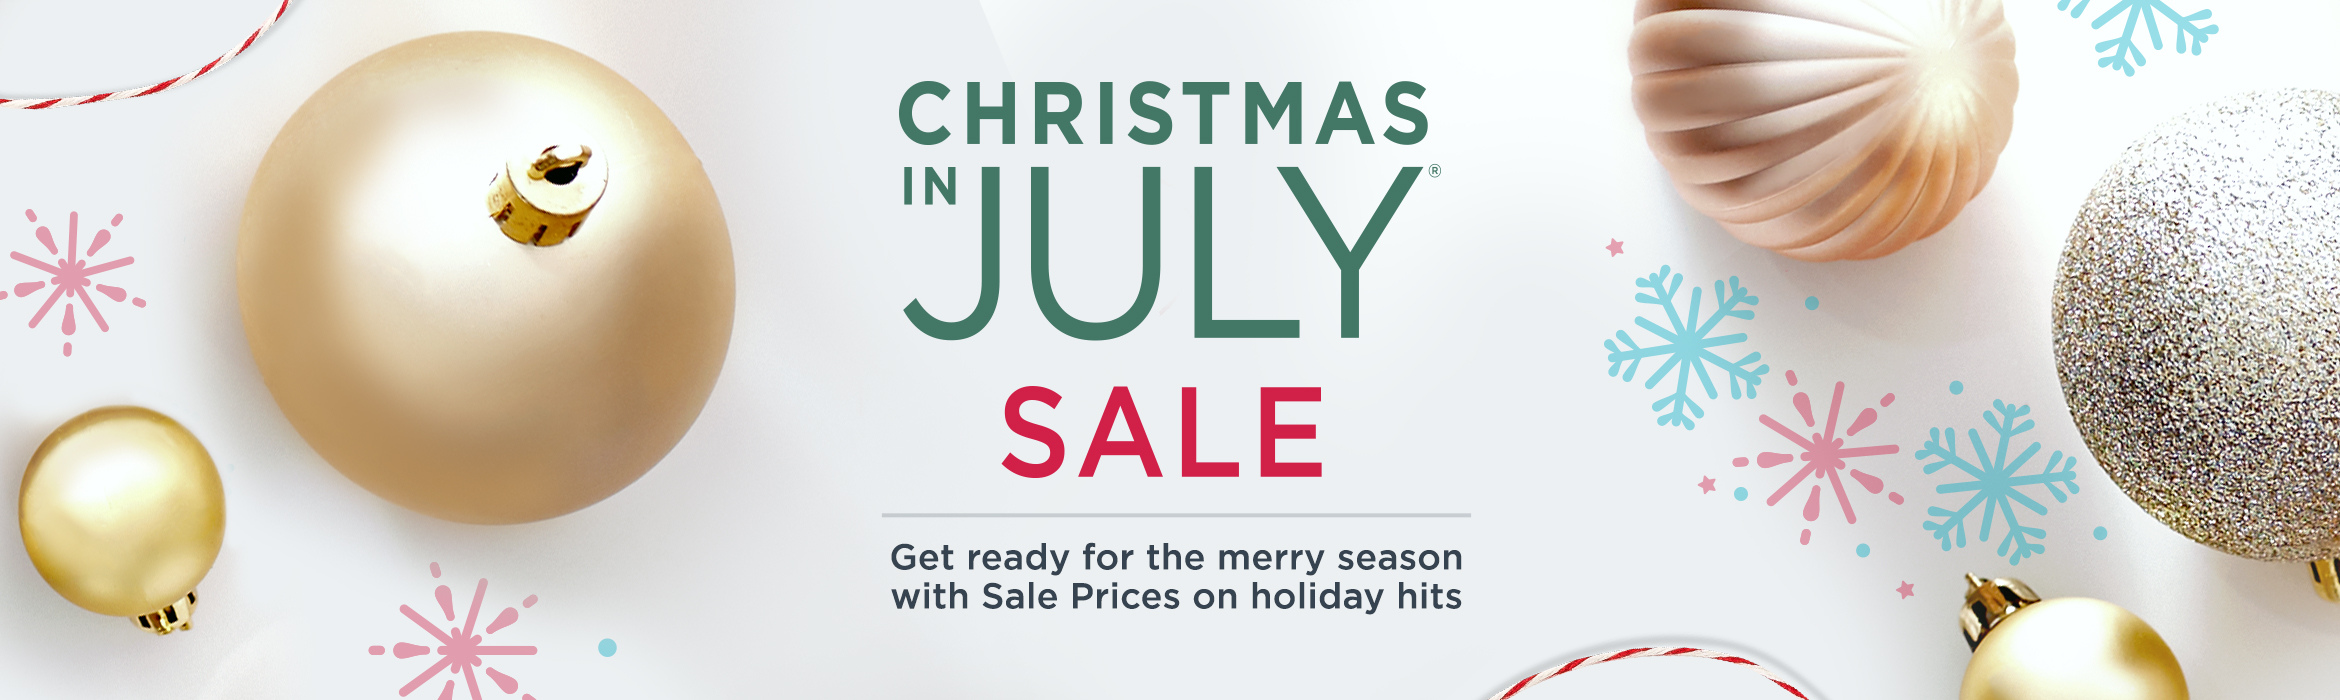 Christmas In July Qvc.Qvc Christmas In July Tvshoppingqueens